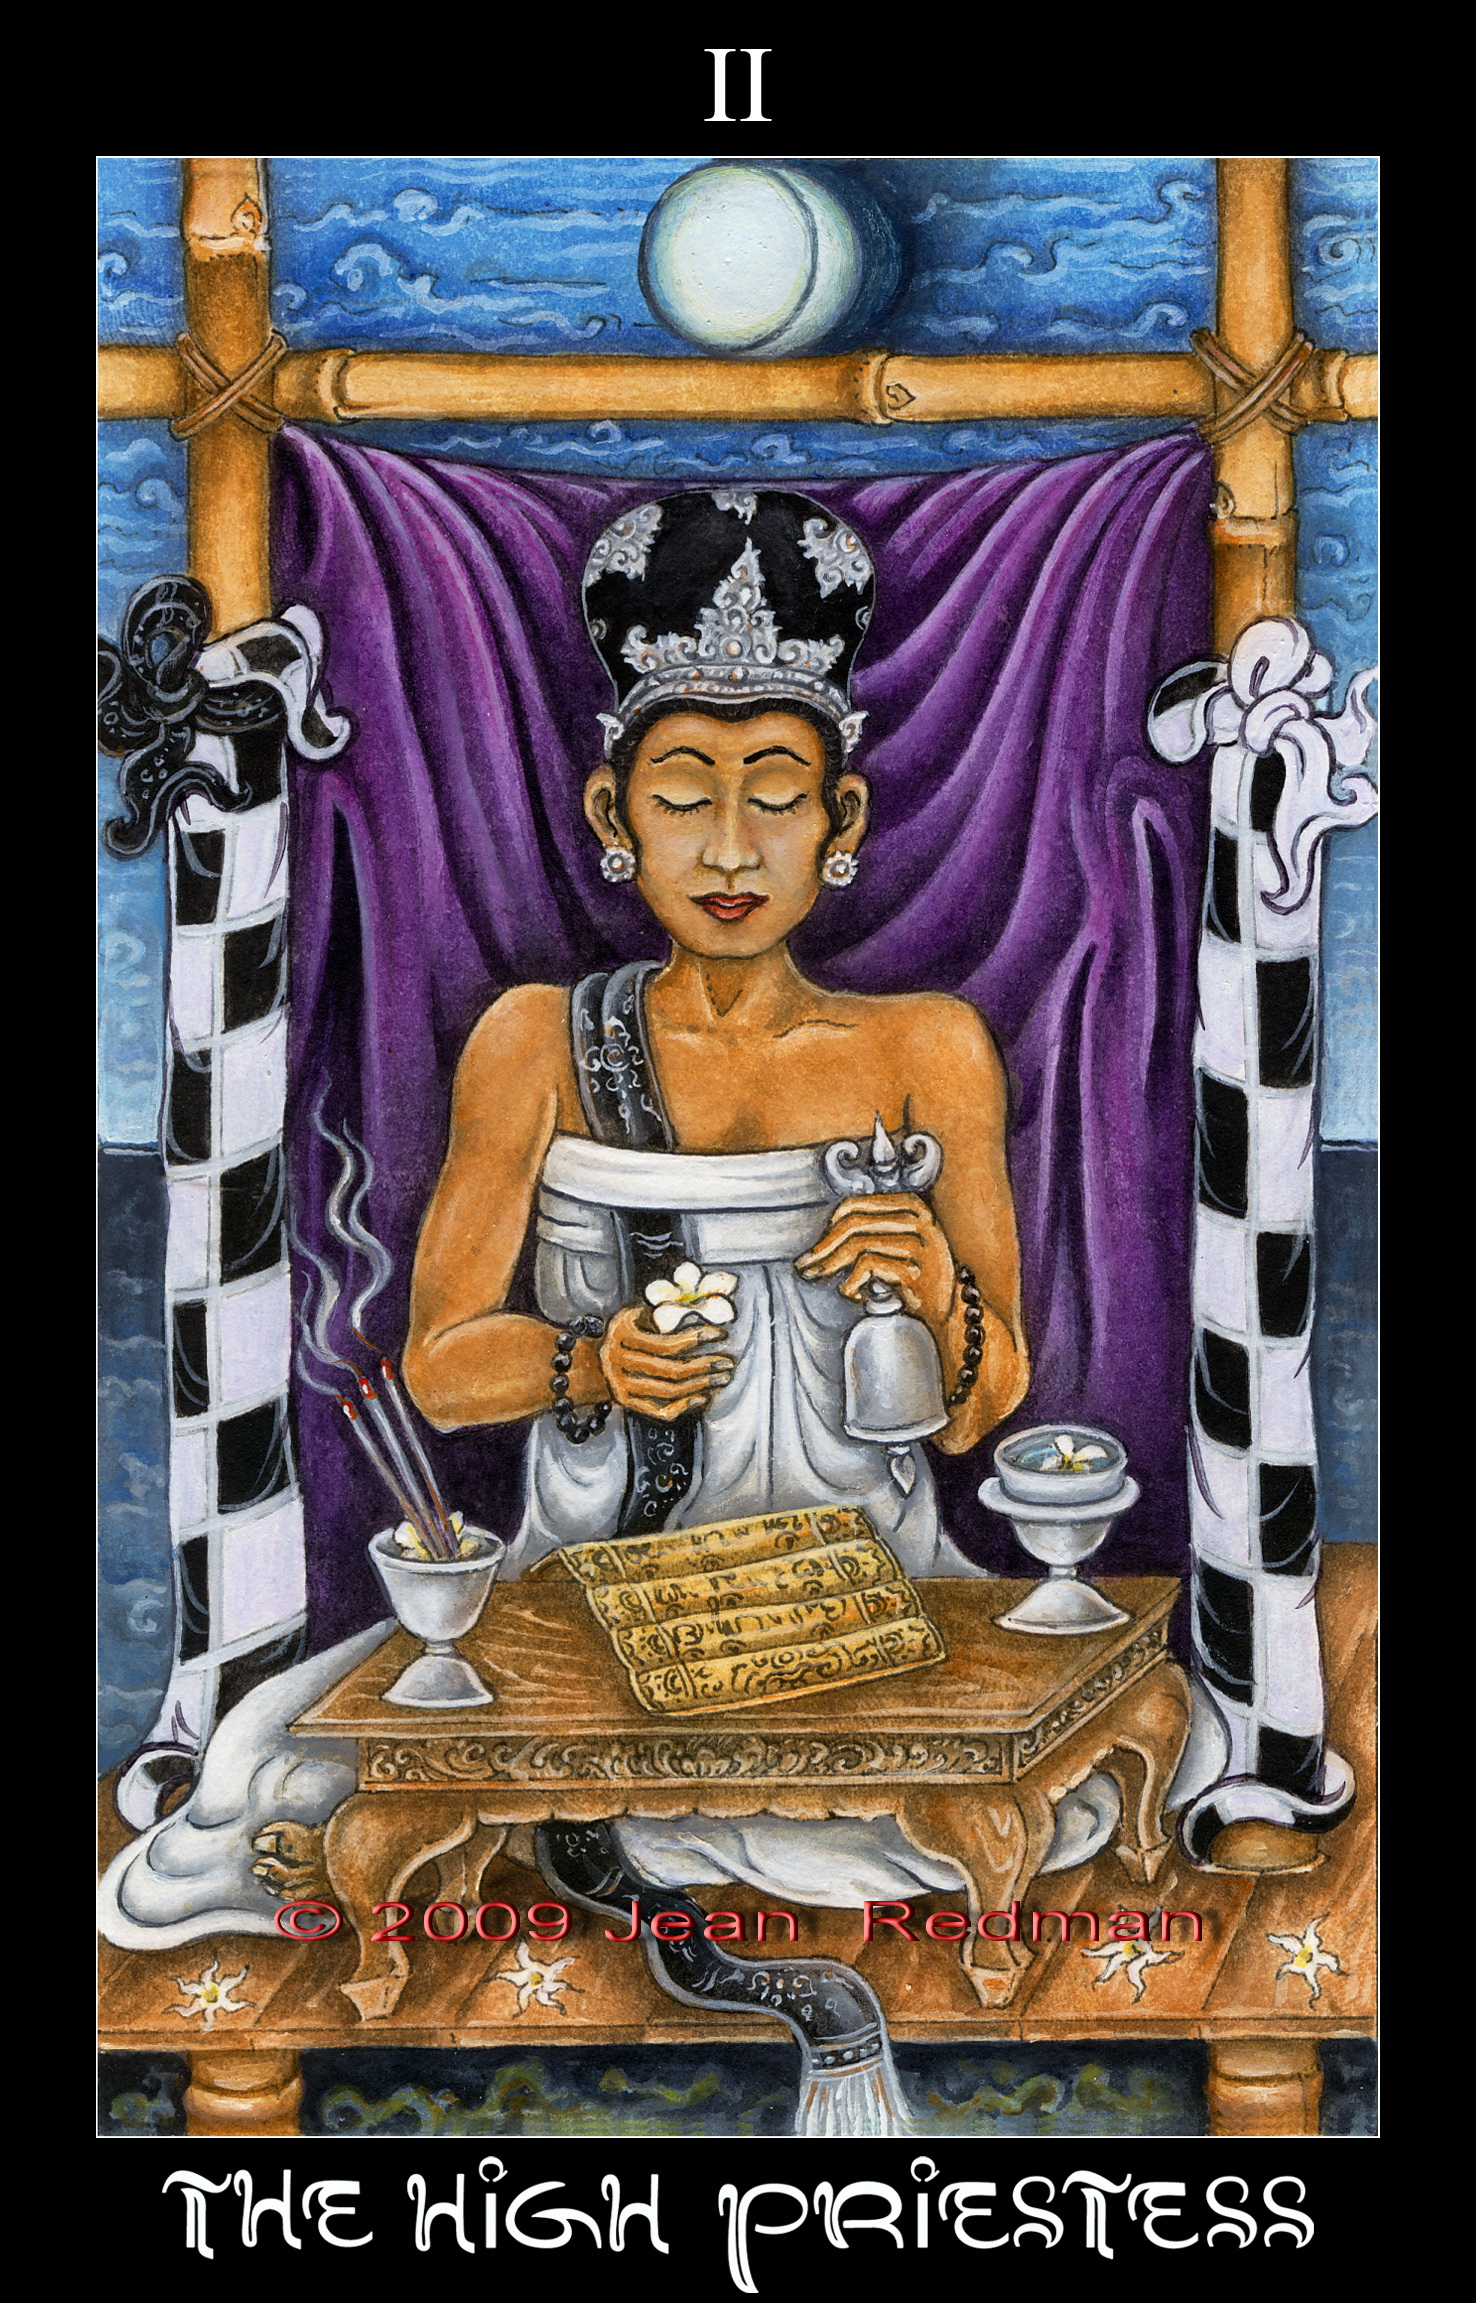 High Priestess Full Colorful Deck Major Stock Illustration: The High Priestess History Of Origin